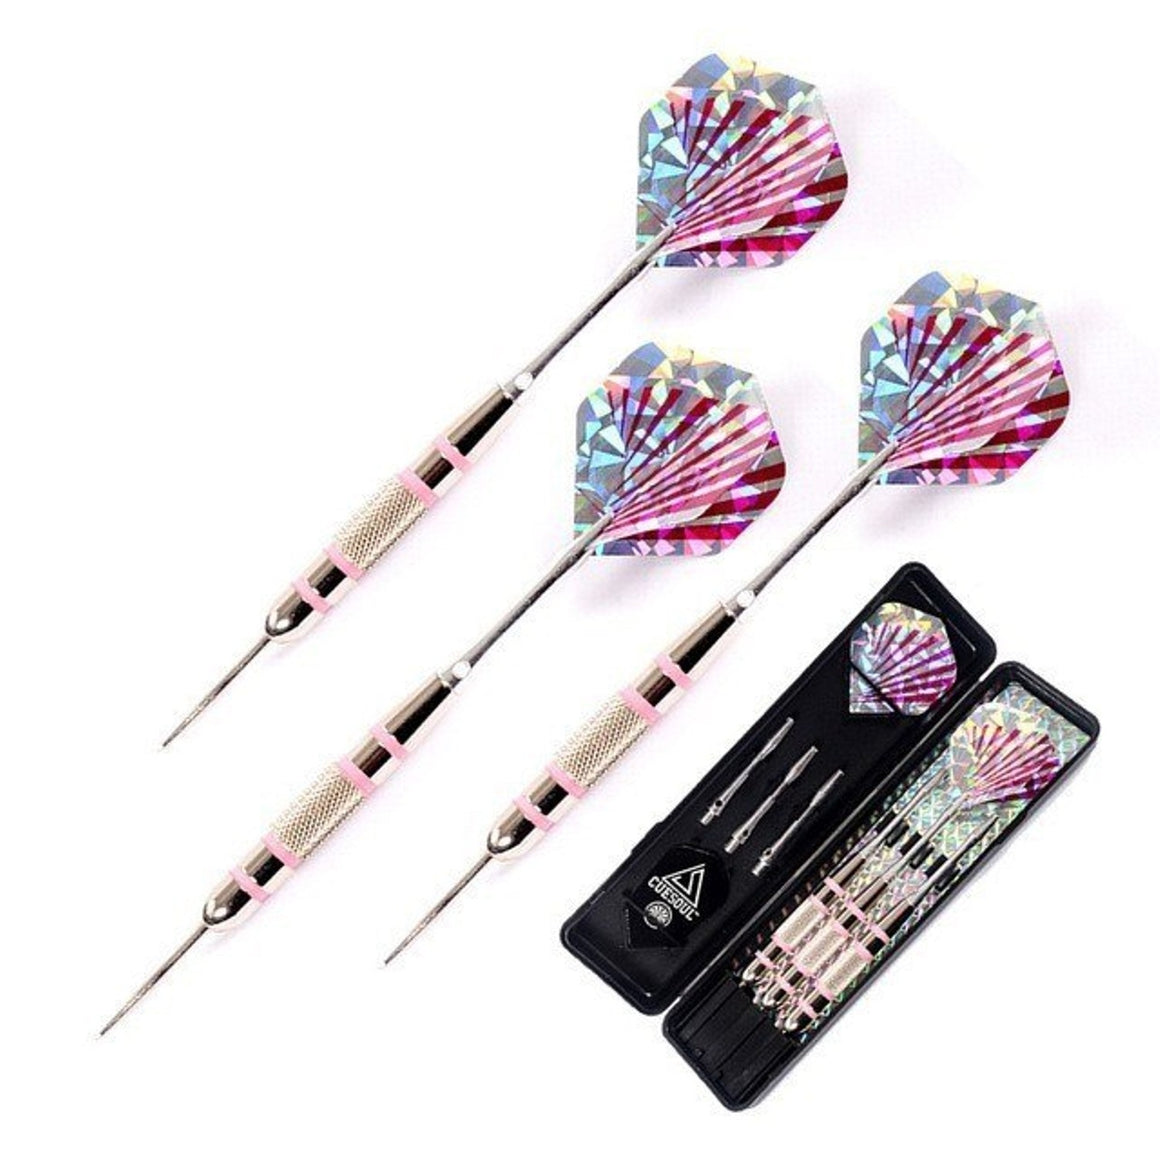 CUESOUL 24g 16cm Needle Steel Tip Darts With Aluminum Dart Shaft And Pink Dardos Flights For Indoor Professional Dartboard Games